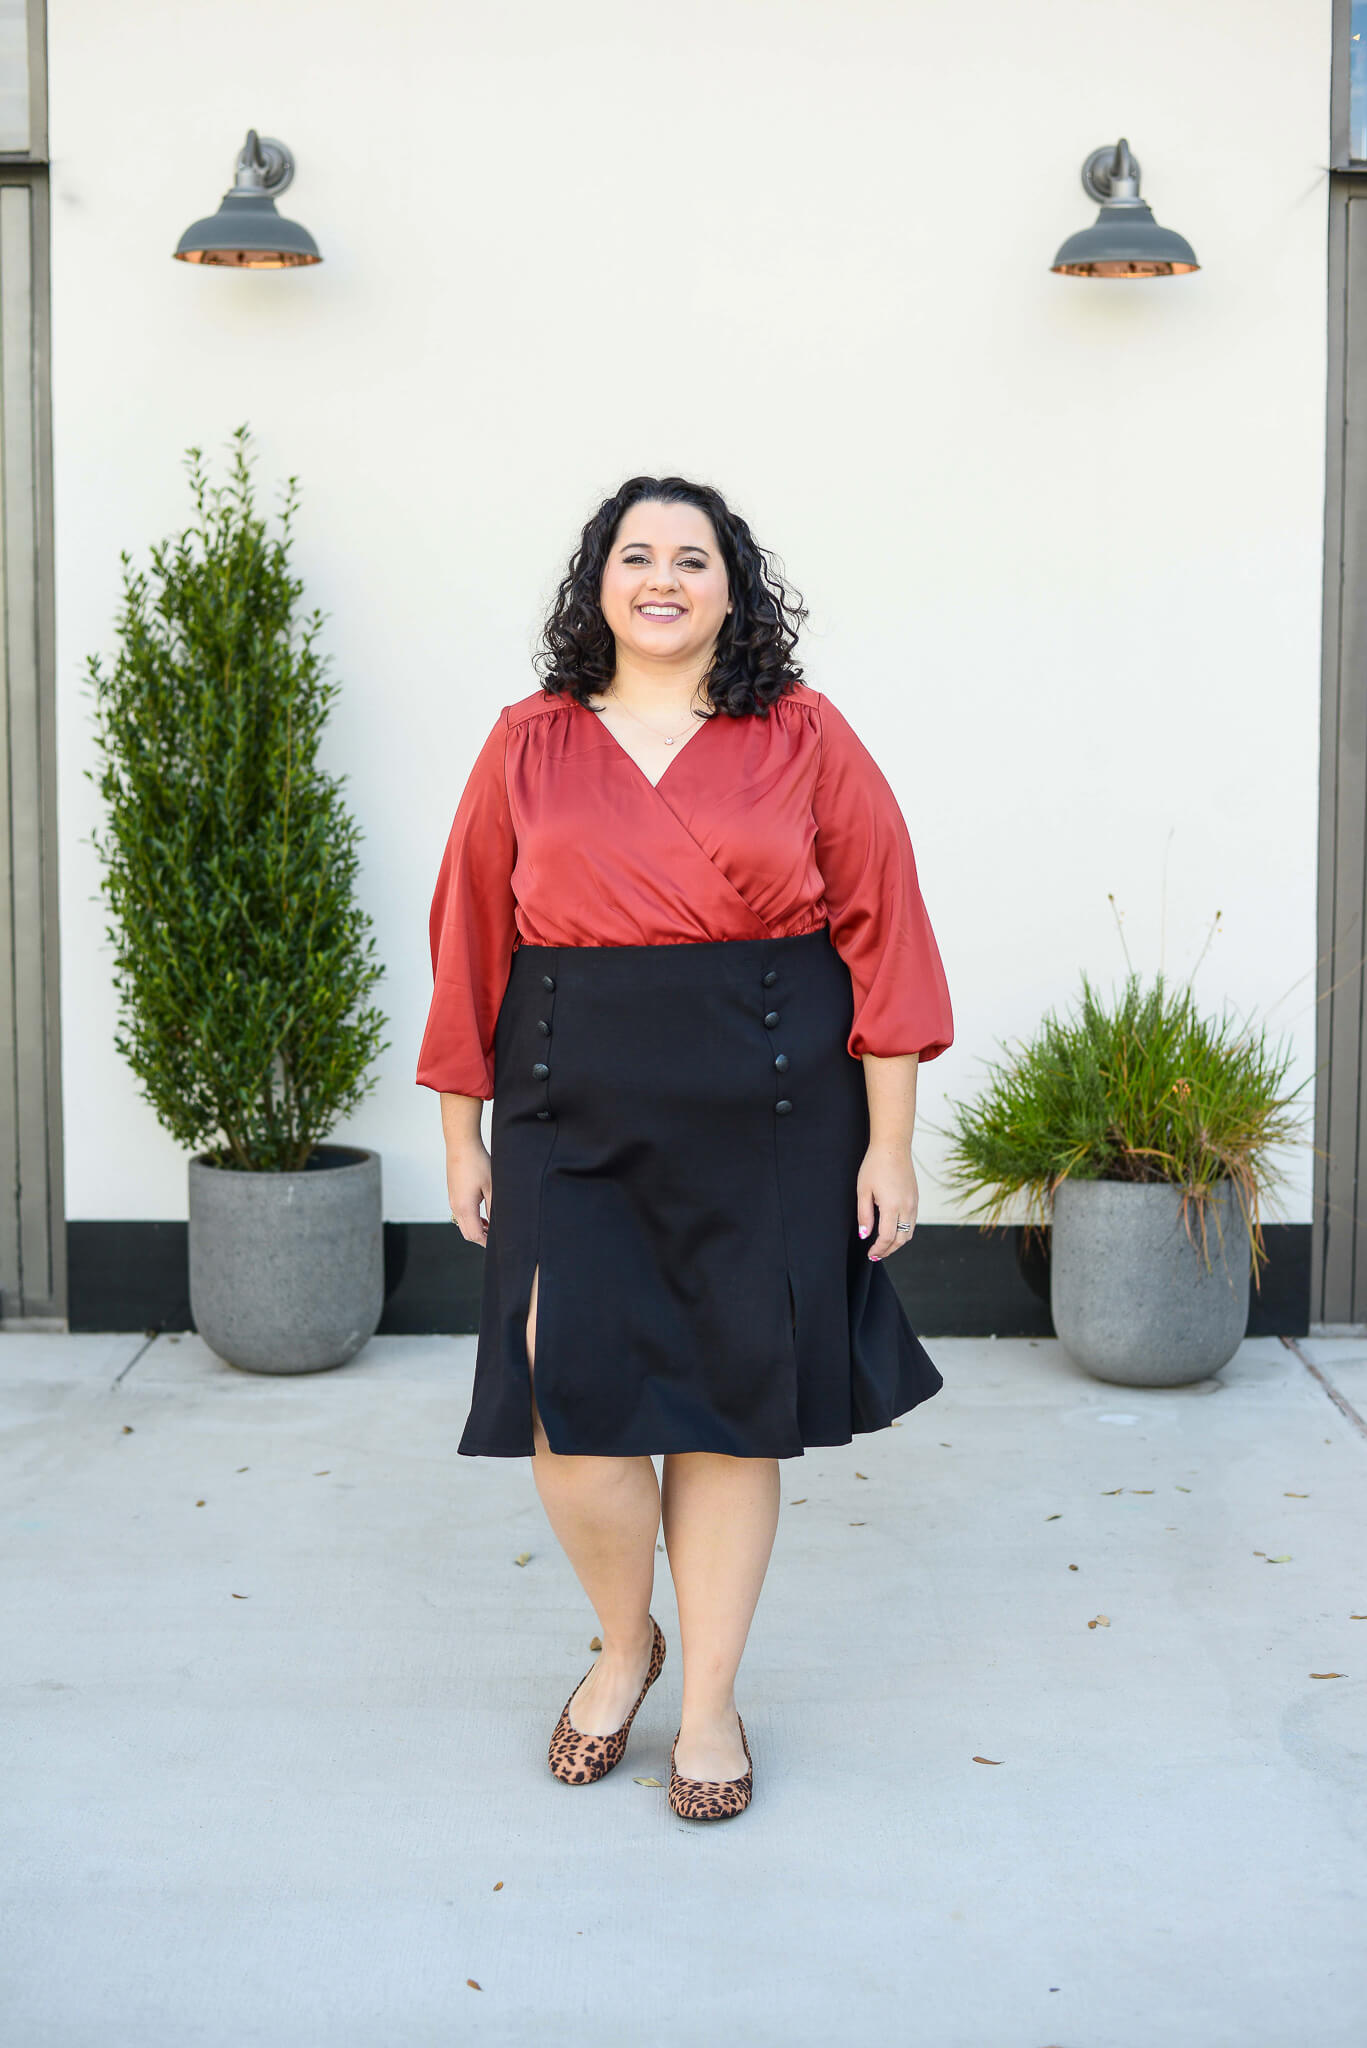 Refreshing my spring wardrobe has never been easier than with Lane Bryant's new collection